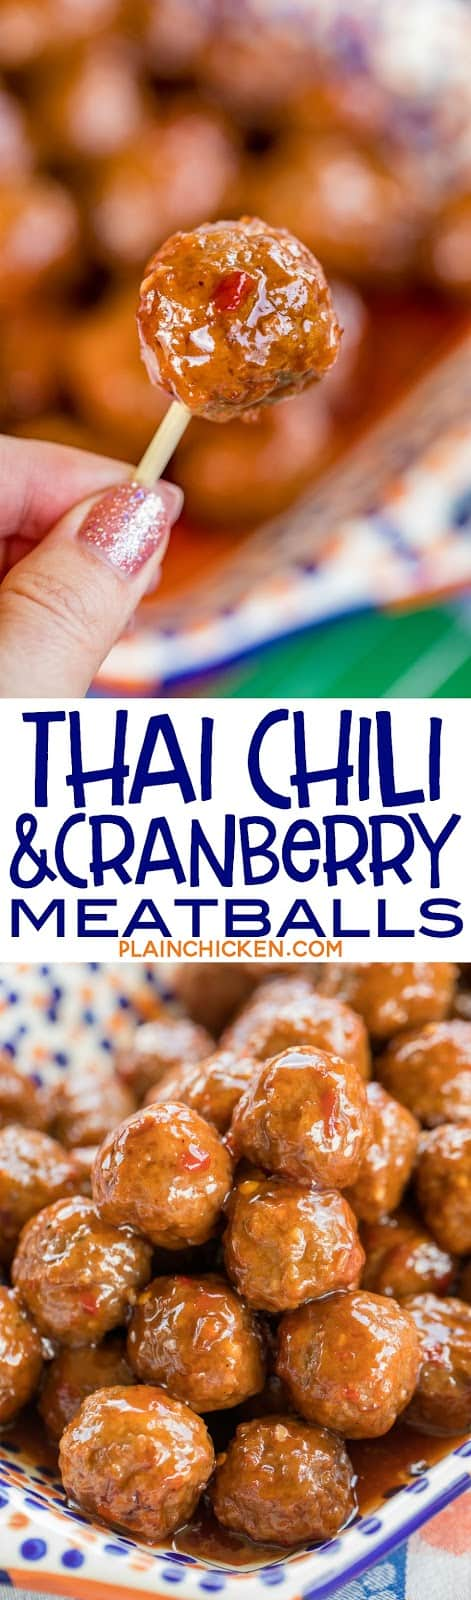 Thai Chili and Cranberry Meatballs - only 3 ingredients!!! Can be made in the slow cooker - great for holiday parties! These things FLY off the plate. SO good!!! Can also serve as a main dish over rice or noodles. I always have the ingredients on hand for a quick appetizer or dinner. #slowcooker #meatballs #appetizer